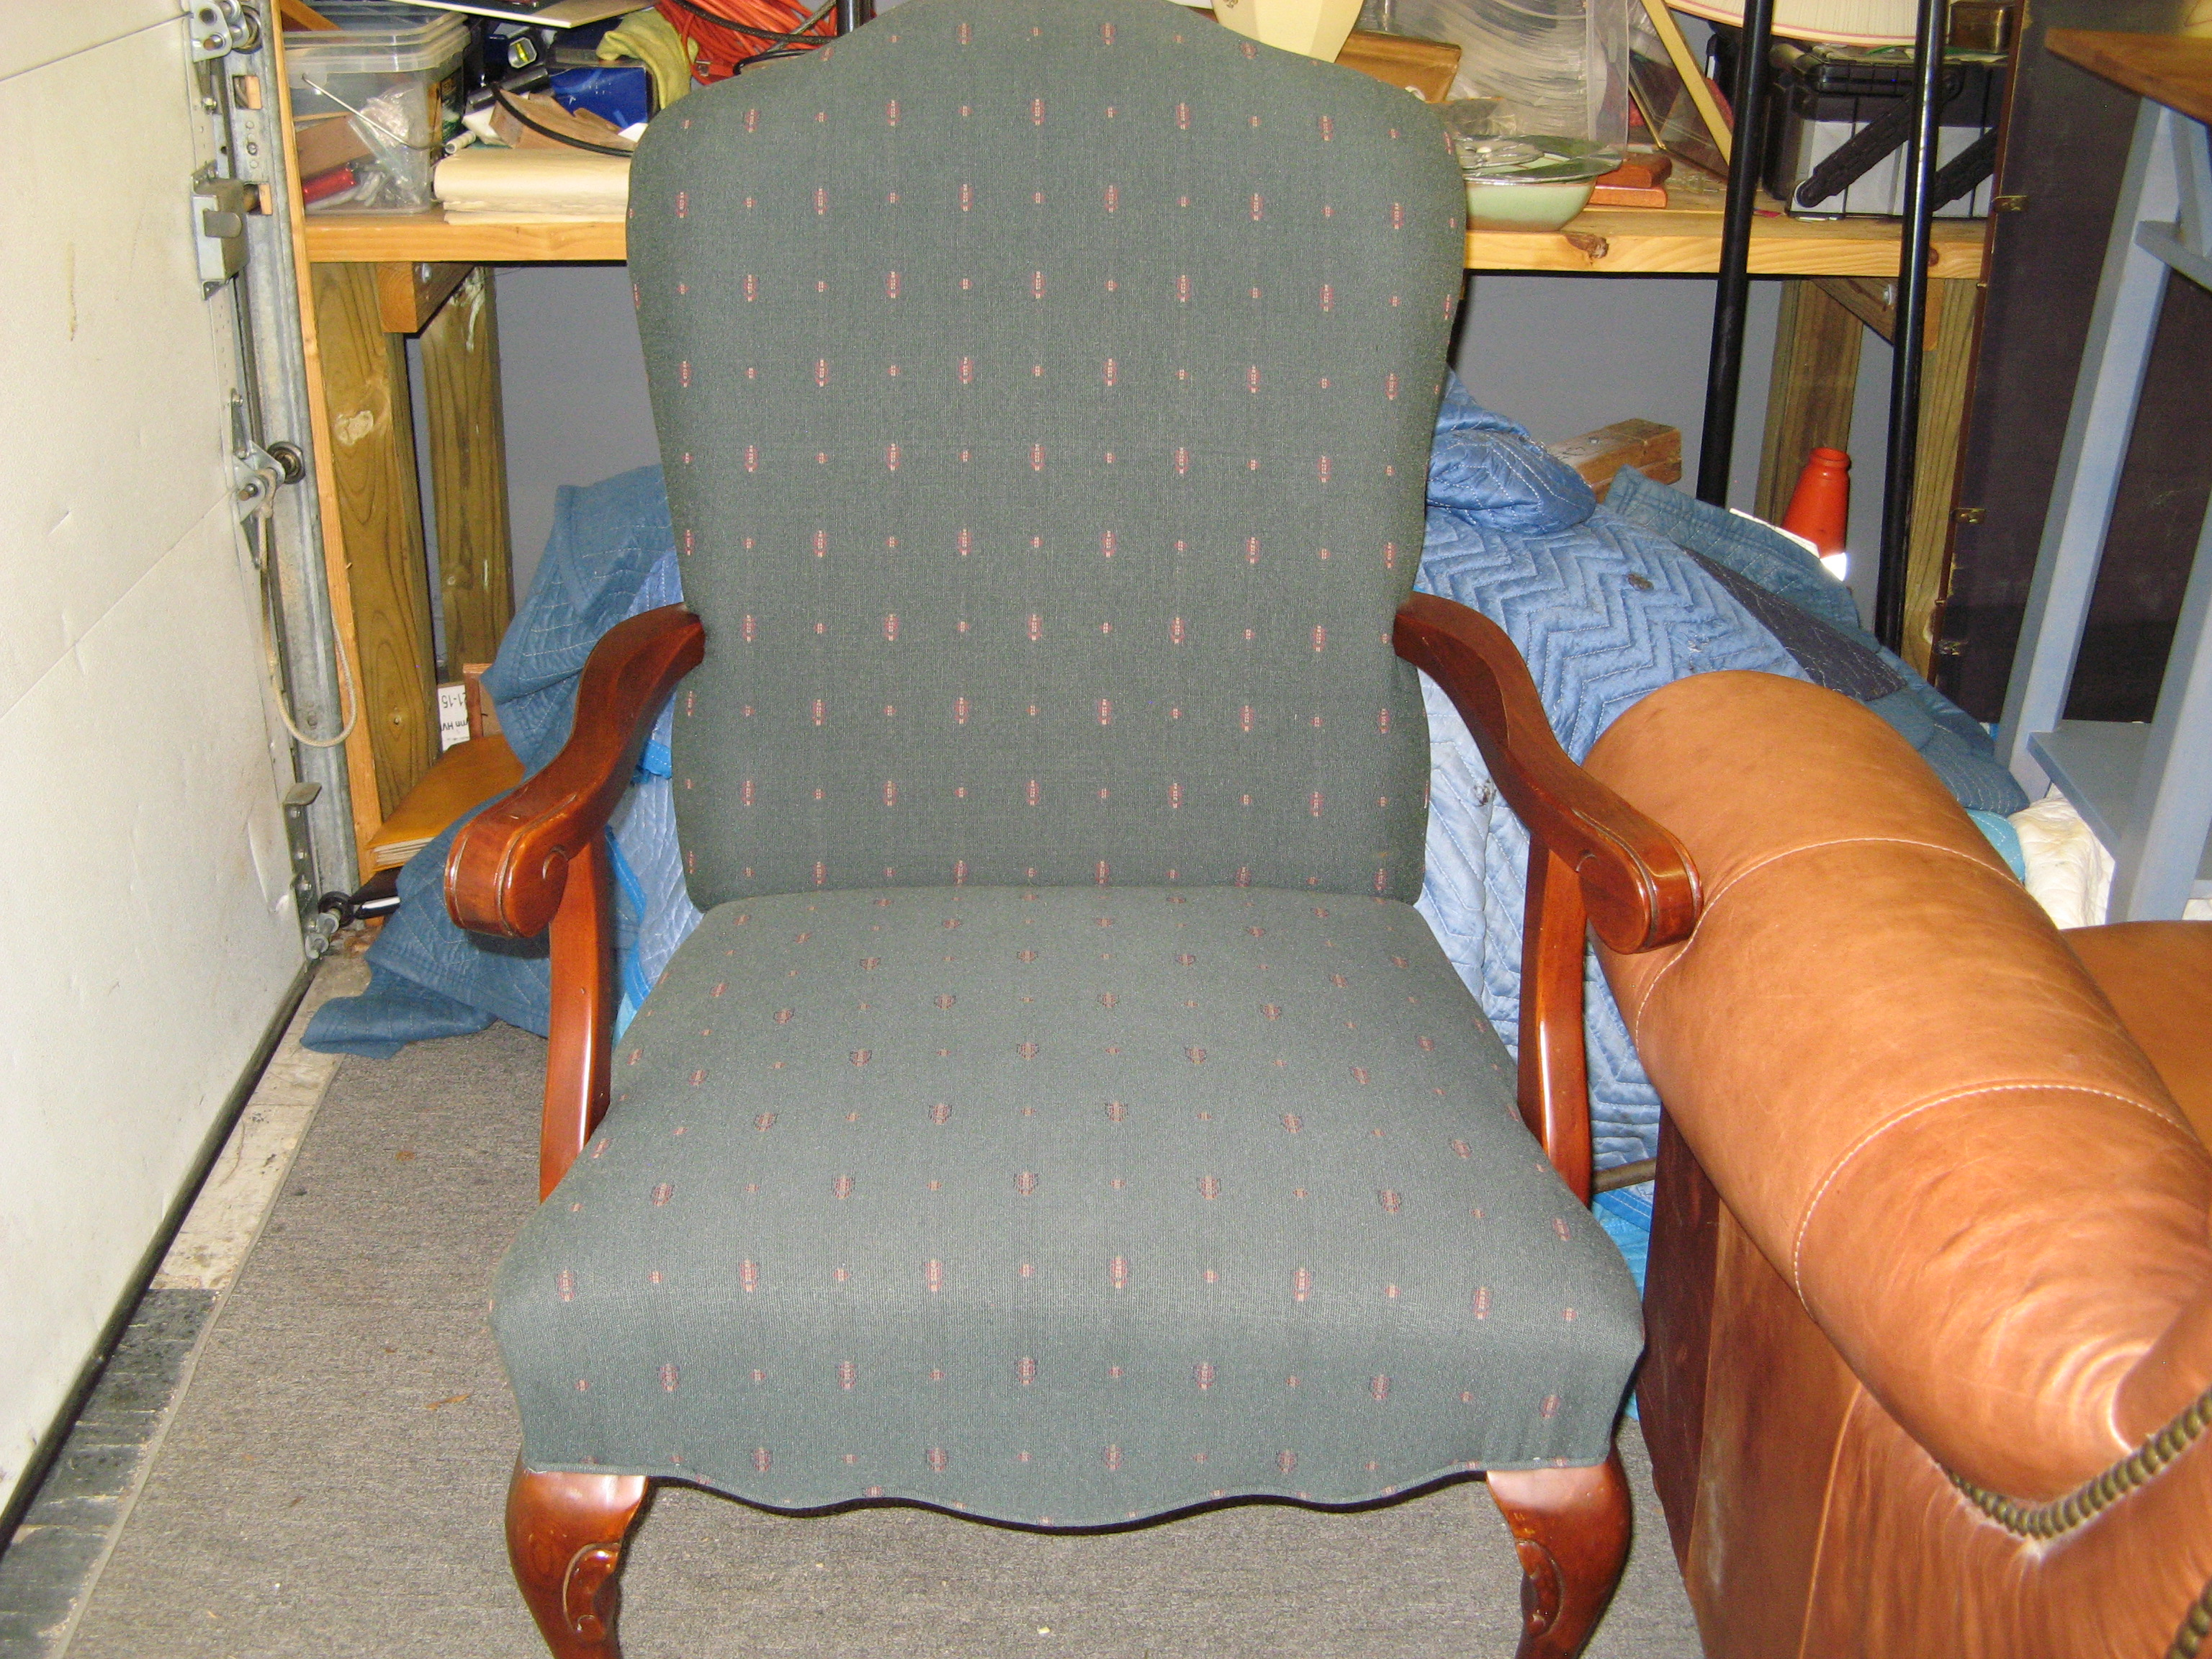 Upholstered Accent Chair with Wood Arms and Legs